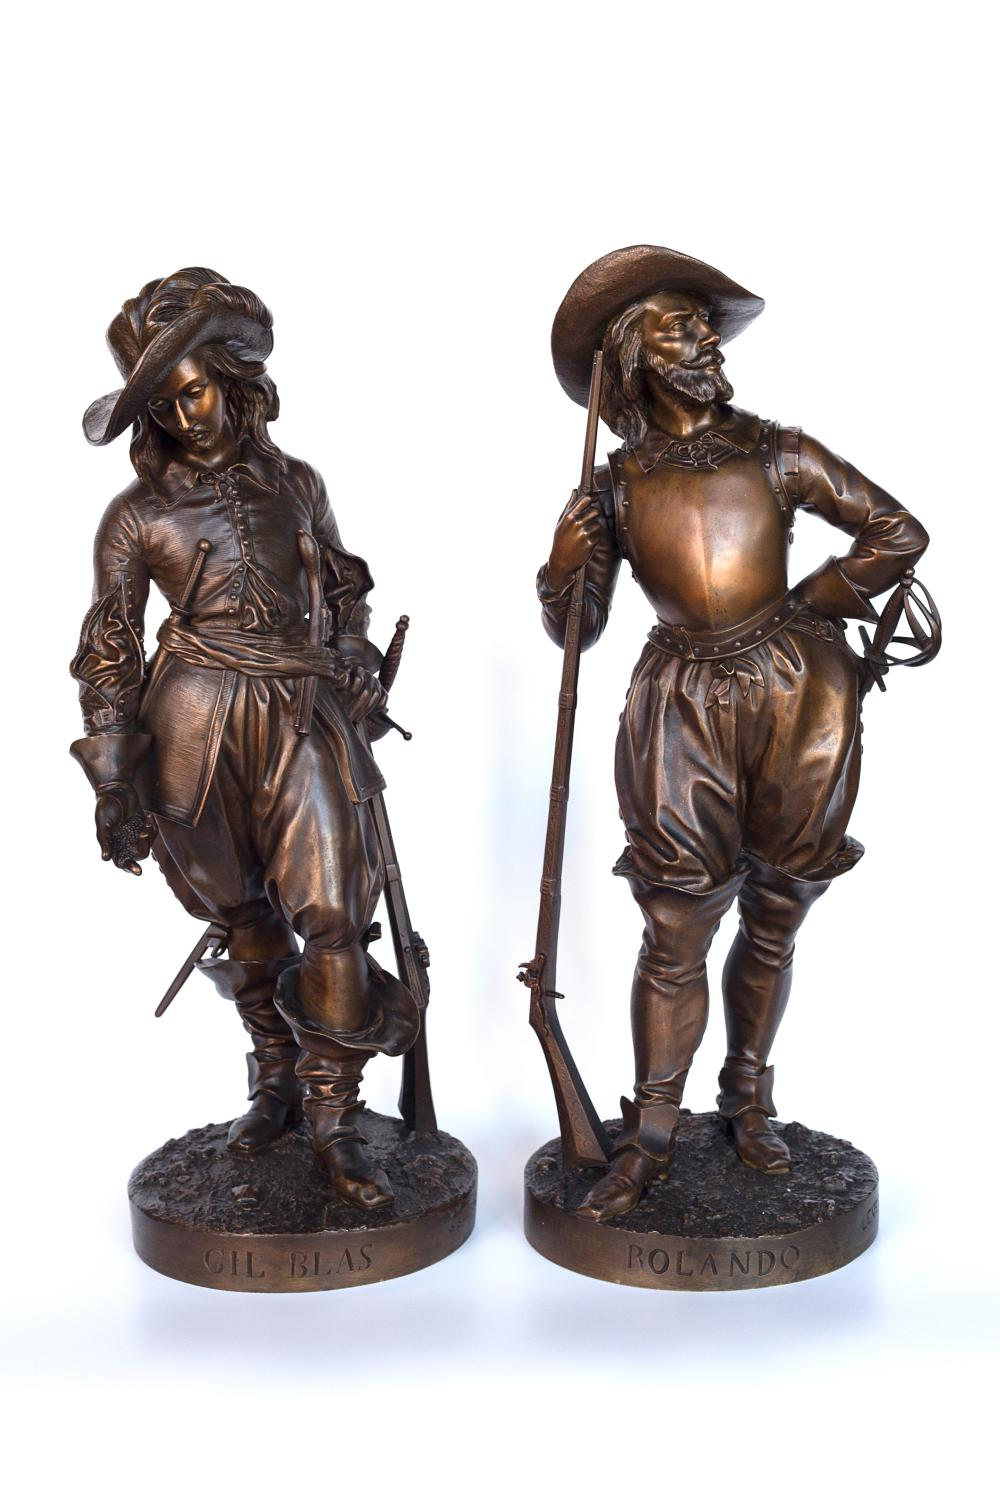 Pair of Bronze E. Quesnel Sculptures - Rolando and Gil